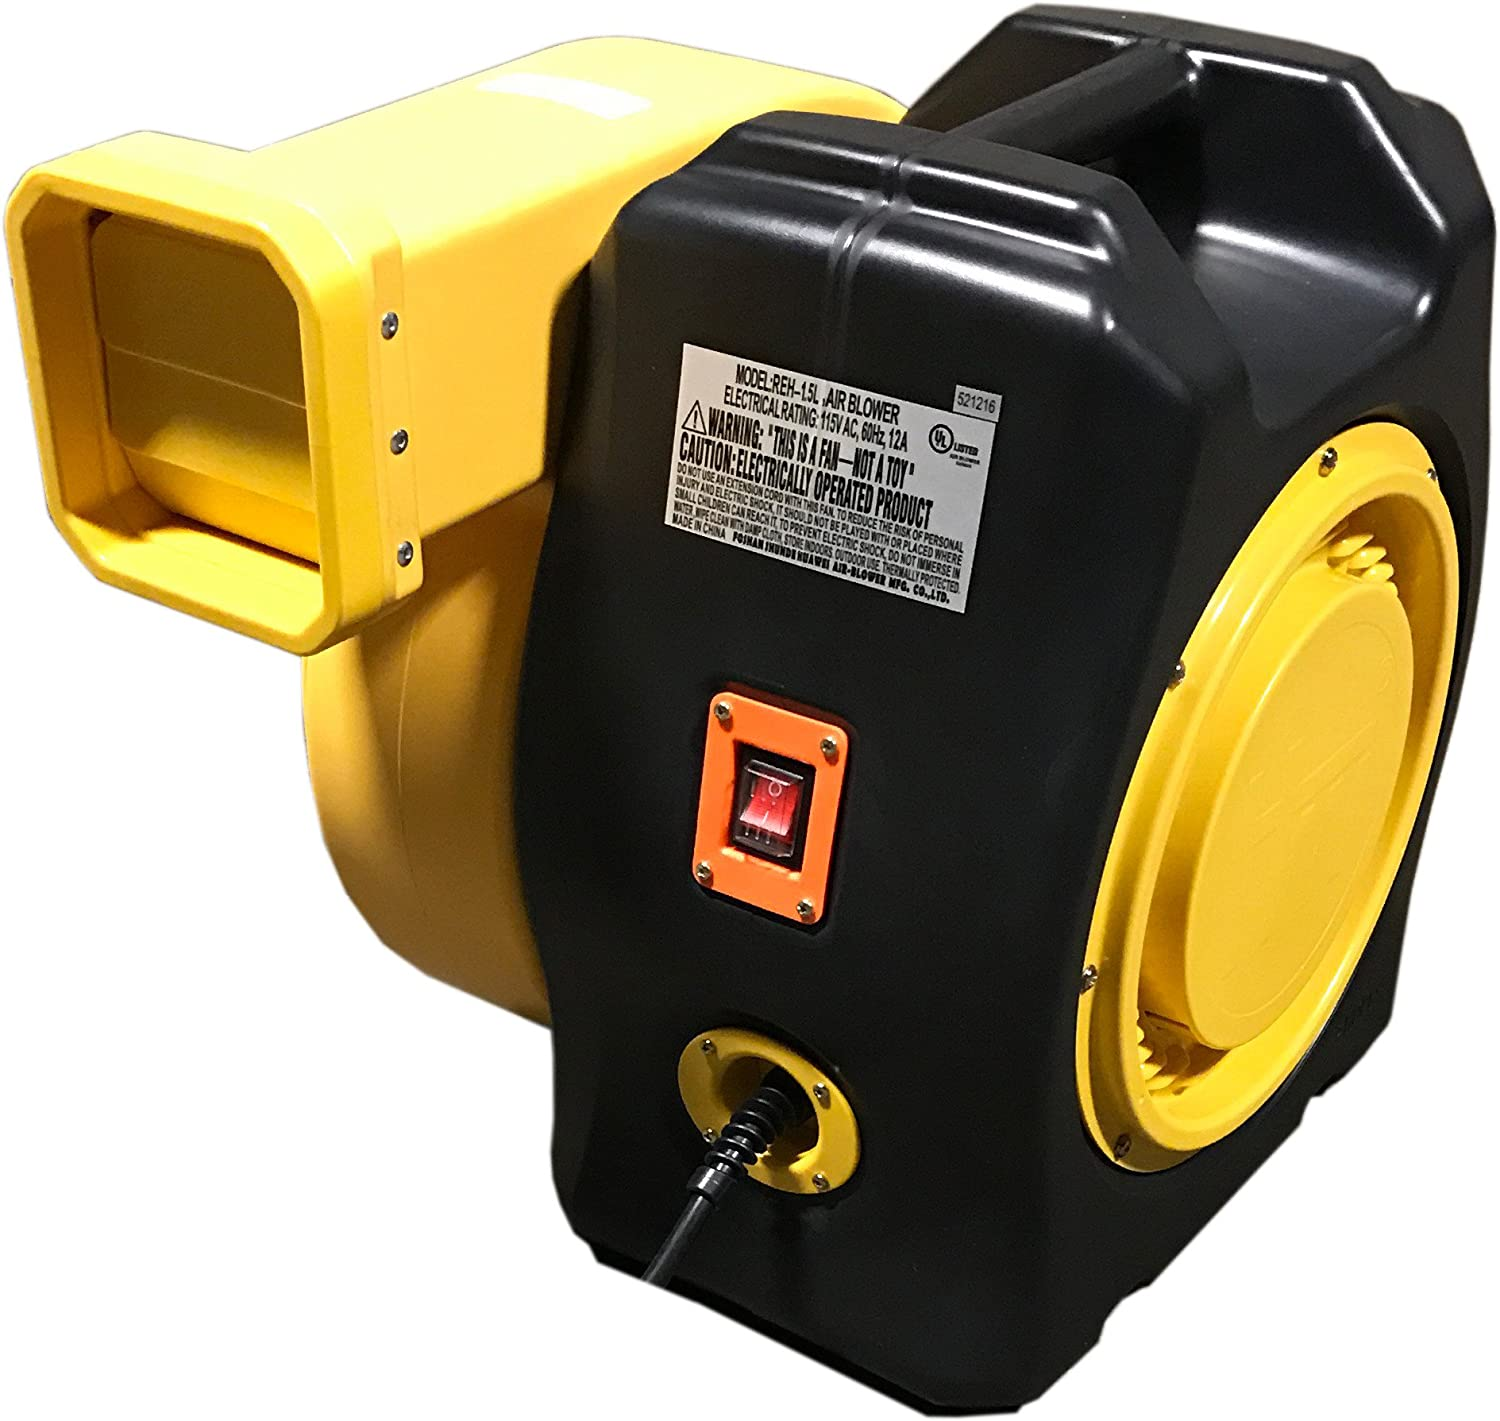 Bounce House Blower - 1.5 HP Blower for Inflatables